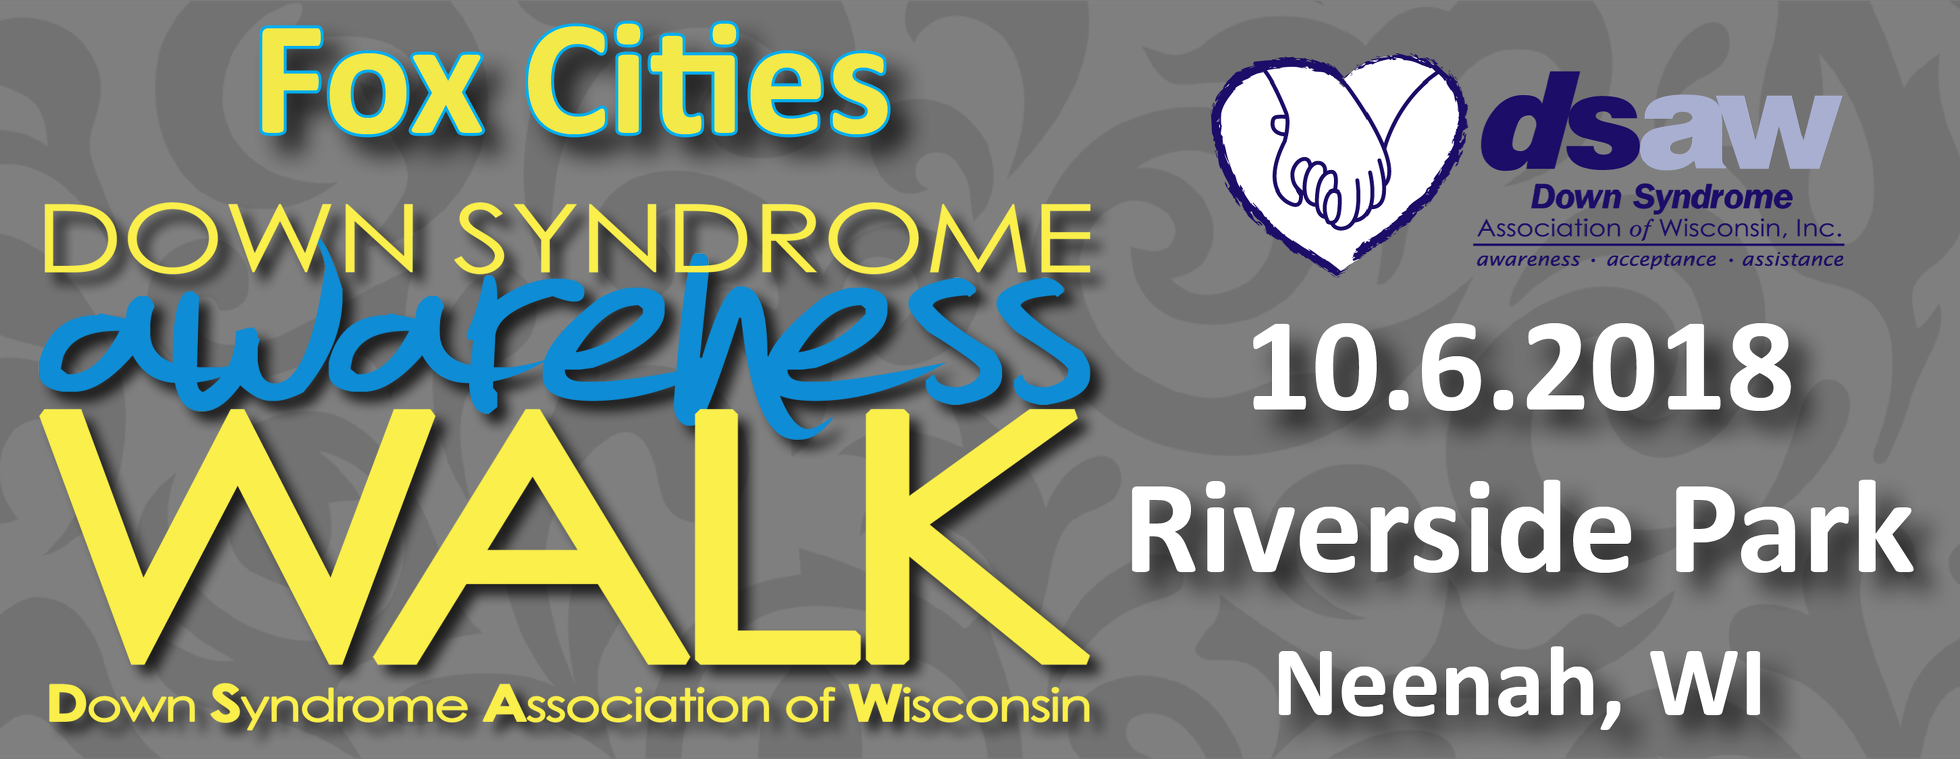 Fox Cities Down Syndrome Awareness Walk 2018